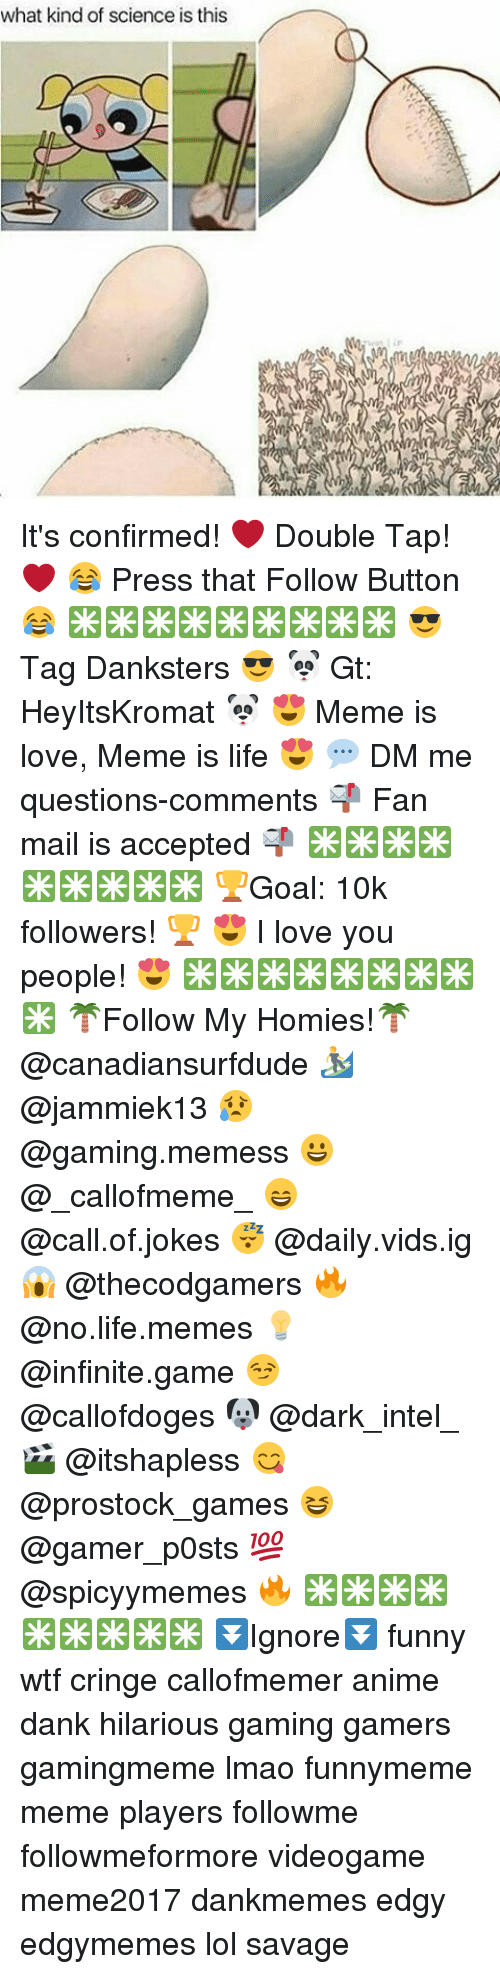 Life Meme: what kind of science is this It's confirmed! ❤ Double Tap! ❤ 😂 Press that Follow Button😂 ✳✳✳✳✳✳✳✳✳ 😎 Tag Danksters 😎 🐼 Gt: HeyItsKromat 🐼 😍 Meme is love, Meme is life 😍 💬 DM me questions-comments 📬 Fan mail is accepted 📬 ✳✳✳✳✳✳✳✳✳ 🏆Goal: 10k followers! 🏆 😍 I love you people! 😍 ✳✳✳✳✳✳✳✳✳ 🌴Follow My Homies!🌴 @canadiansurfdude 🏄 @jammiek13 😥 @gaming.memess 😀 @_callofmeme_ 😄 @call.of.jokes 😴 @daily.vids.ig 😱 @thecodgamers 🔥 @no.life.memes 💡 @infinite.game 😏 @callofdoges 🐶 @dark_intel_🎬 @itshapless 😋 @prostock_games 😆 @gamer_p0sts 💯 @spicyymemes 🔥 ✳✳✳✳✳✳✳✳✳ ⏬Ignore⏬ funny wtf cringe callofmemer anime dank hilarious gaming gamers gamingmeme lmao funnymeme meme players followme followmeformore videogame meme2017 dankmemes edgy edgymemes lol savage